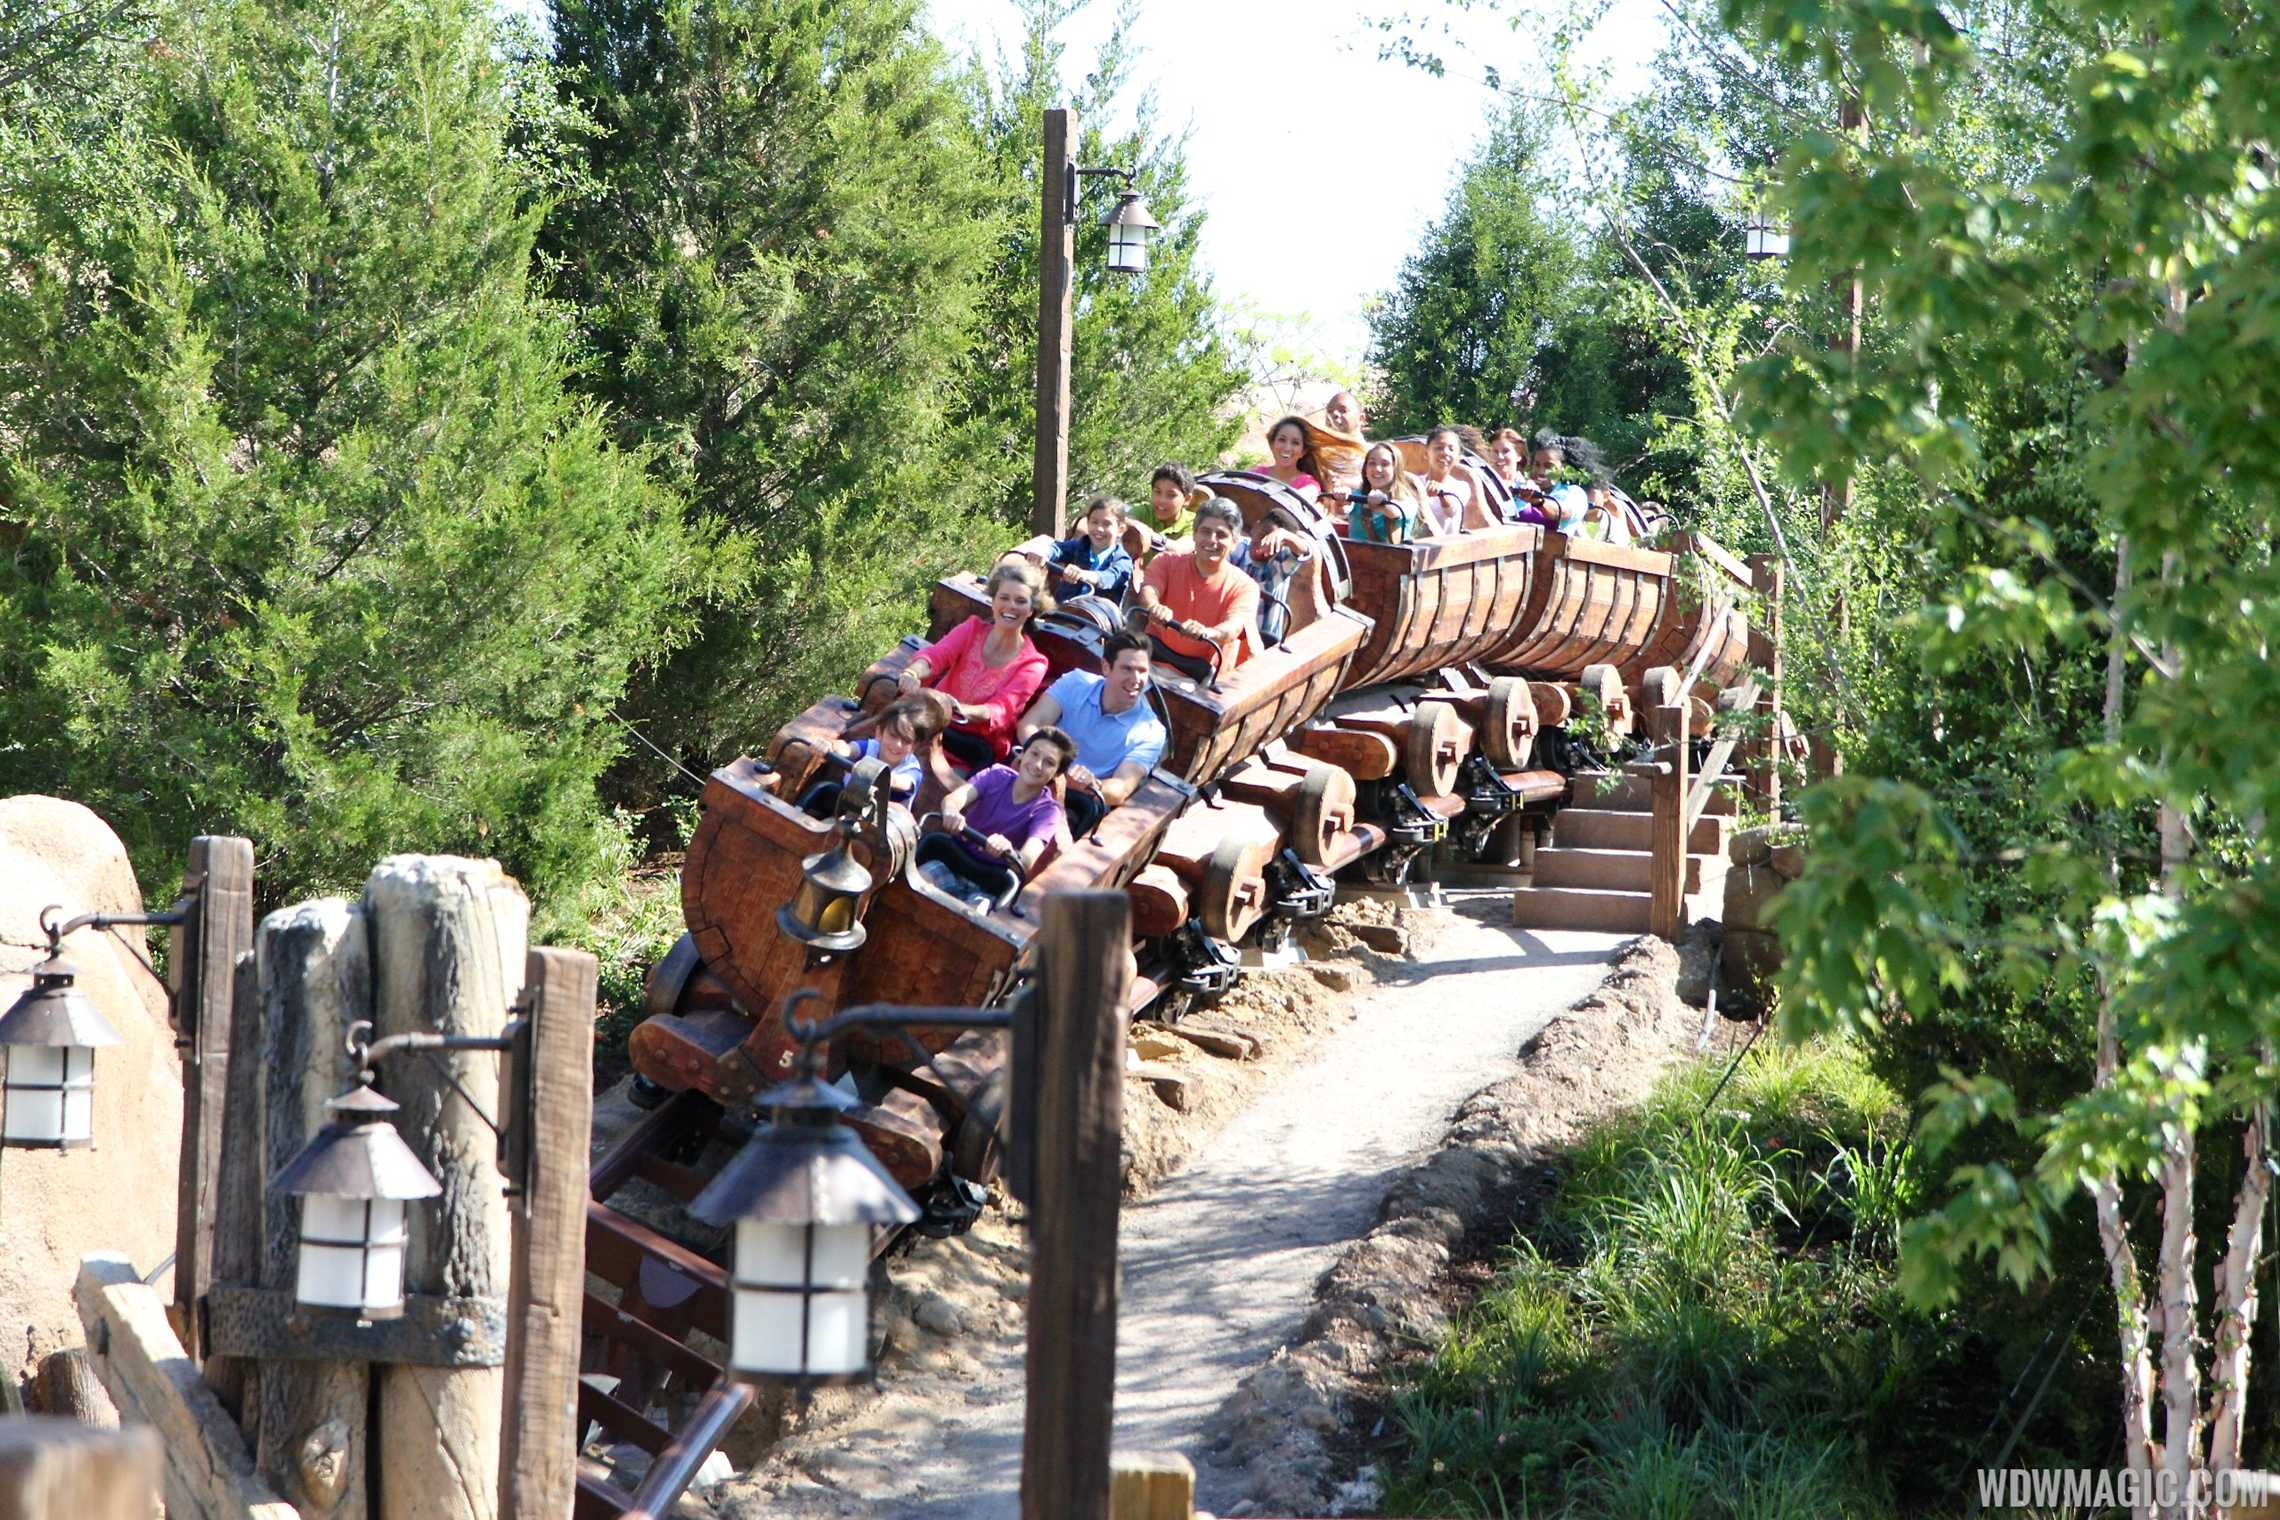 Riders on the Seven Dwarfs Mine Train